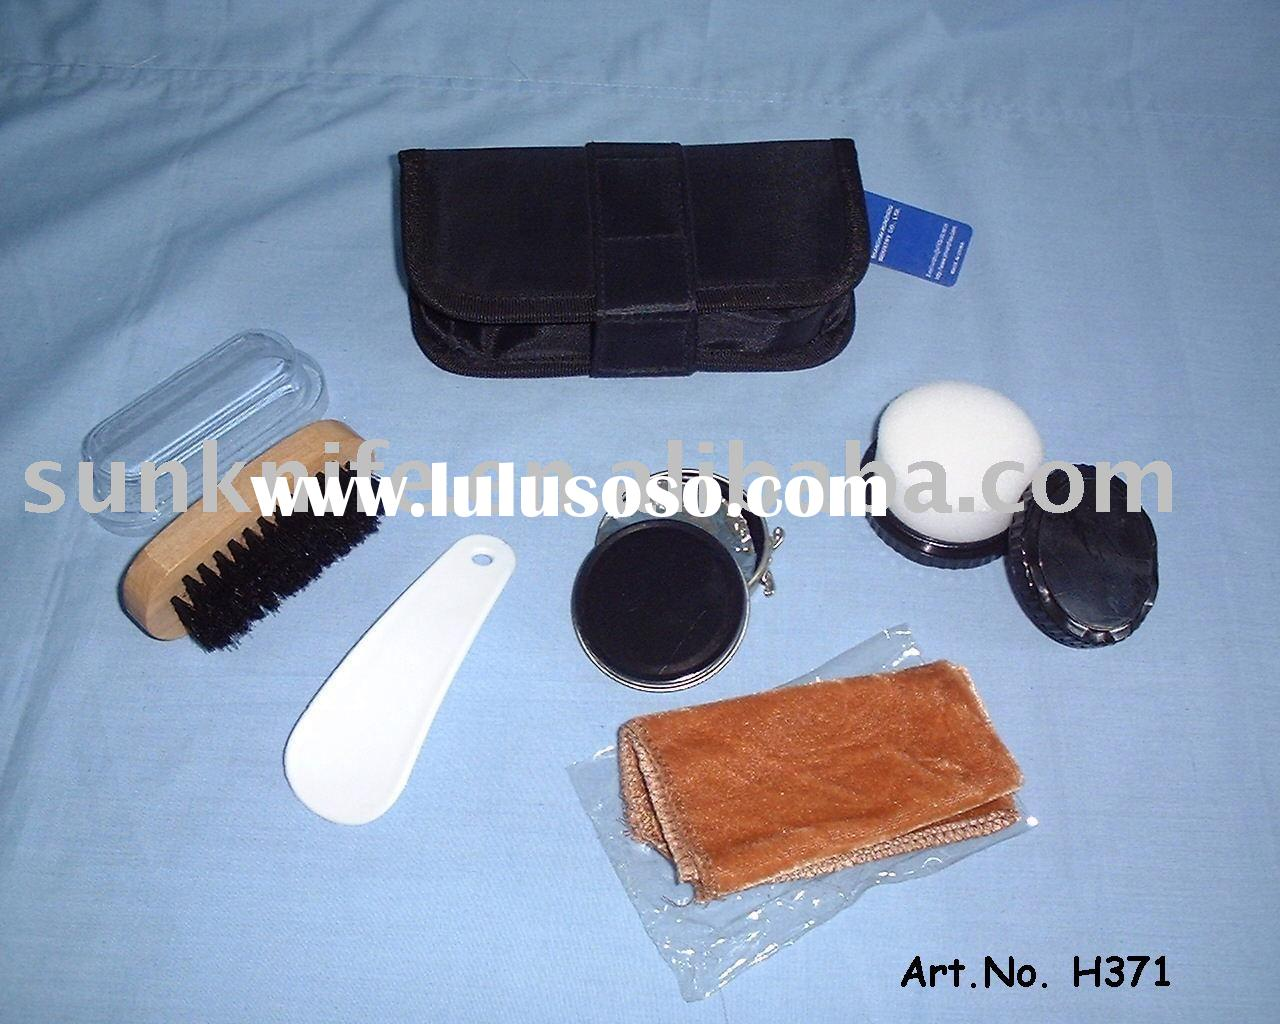 shoe polish kit with PU pouch,green material